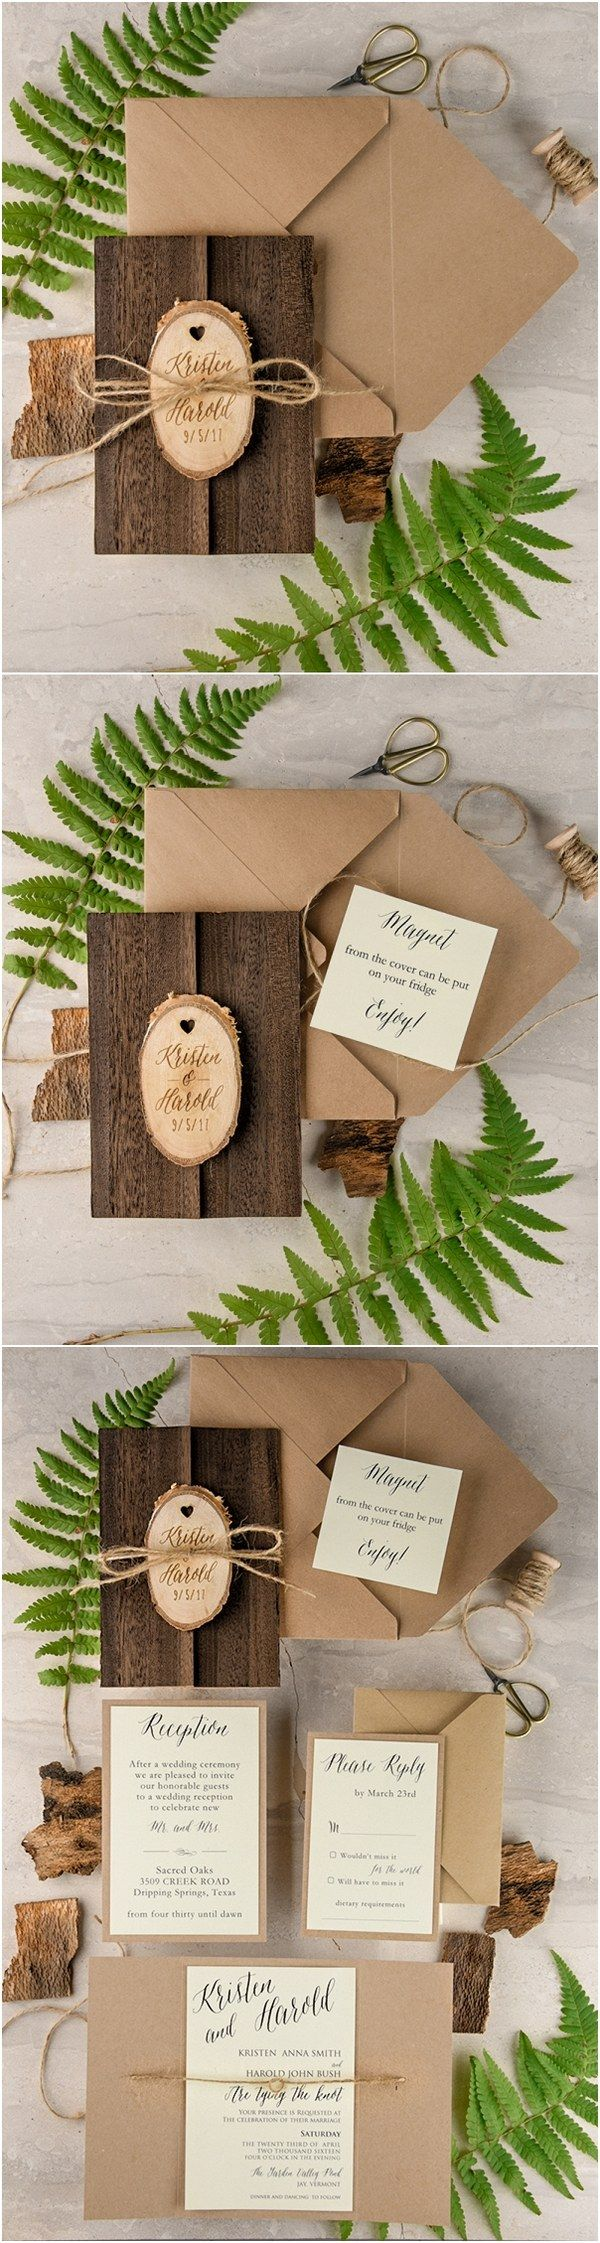 Rustic country wedding invitations #rusticweddingideas